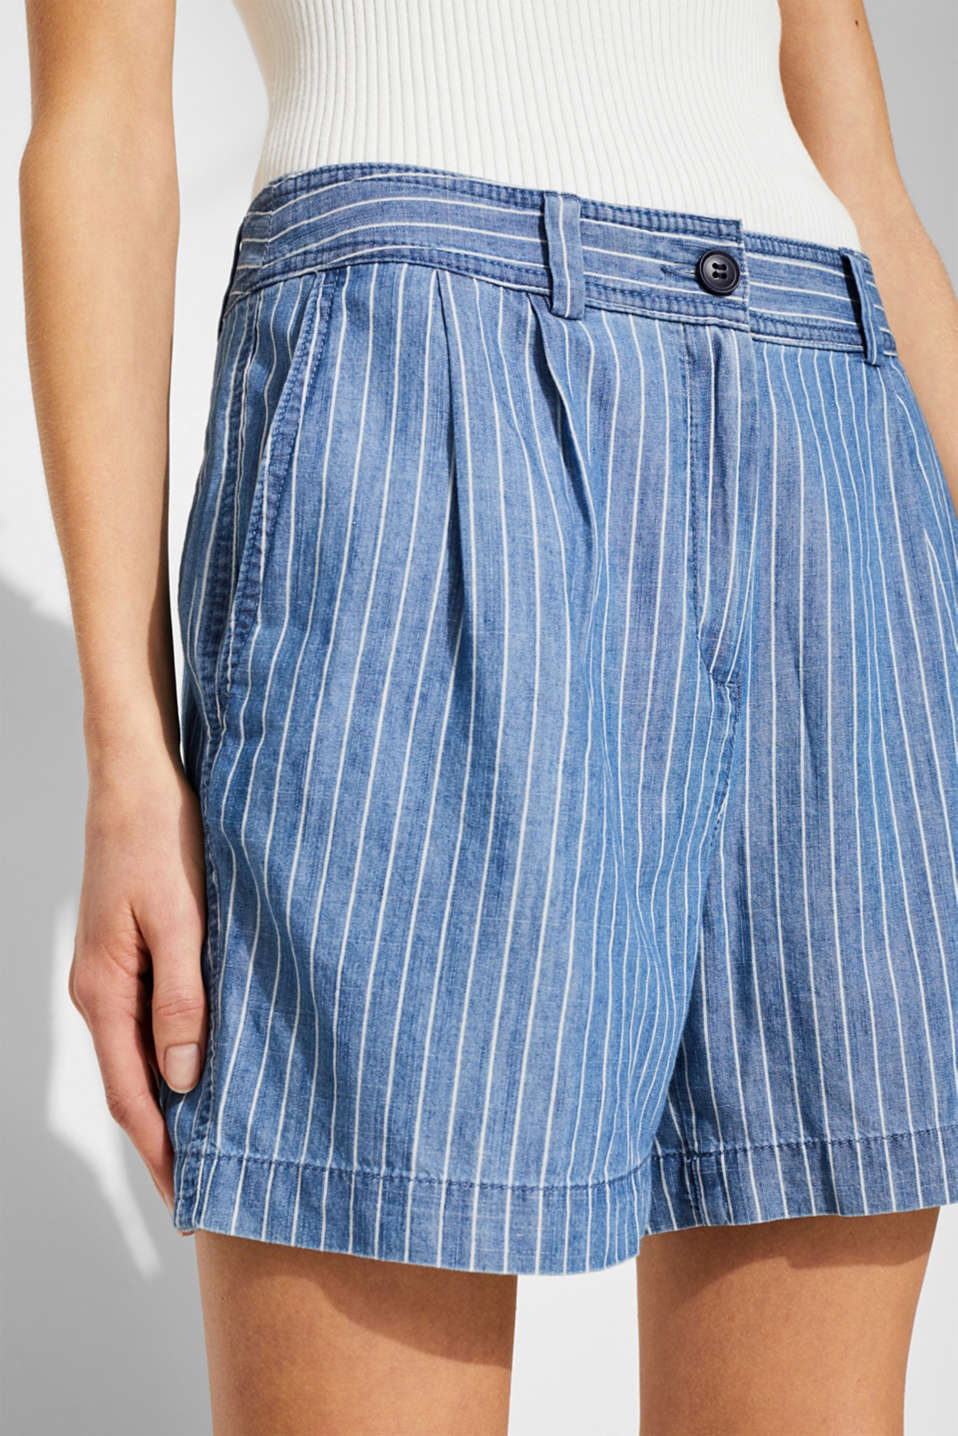 Striped, denim-effect shorts made of blended lyocell, GREY BLUE, detail image number 2